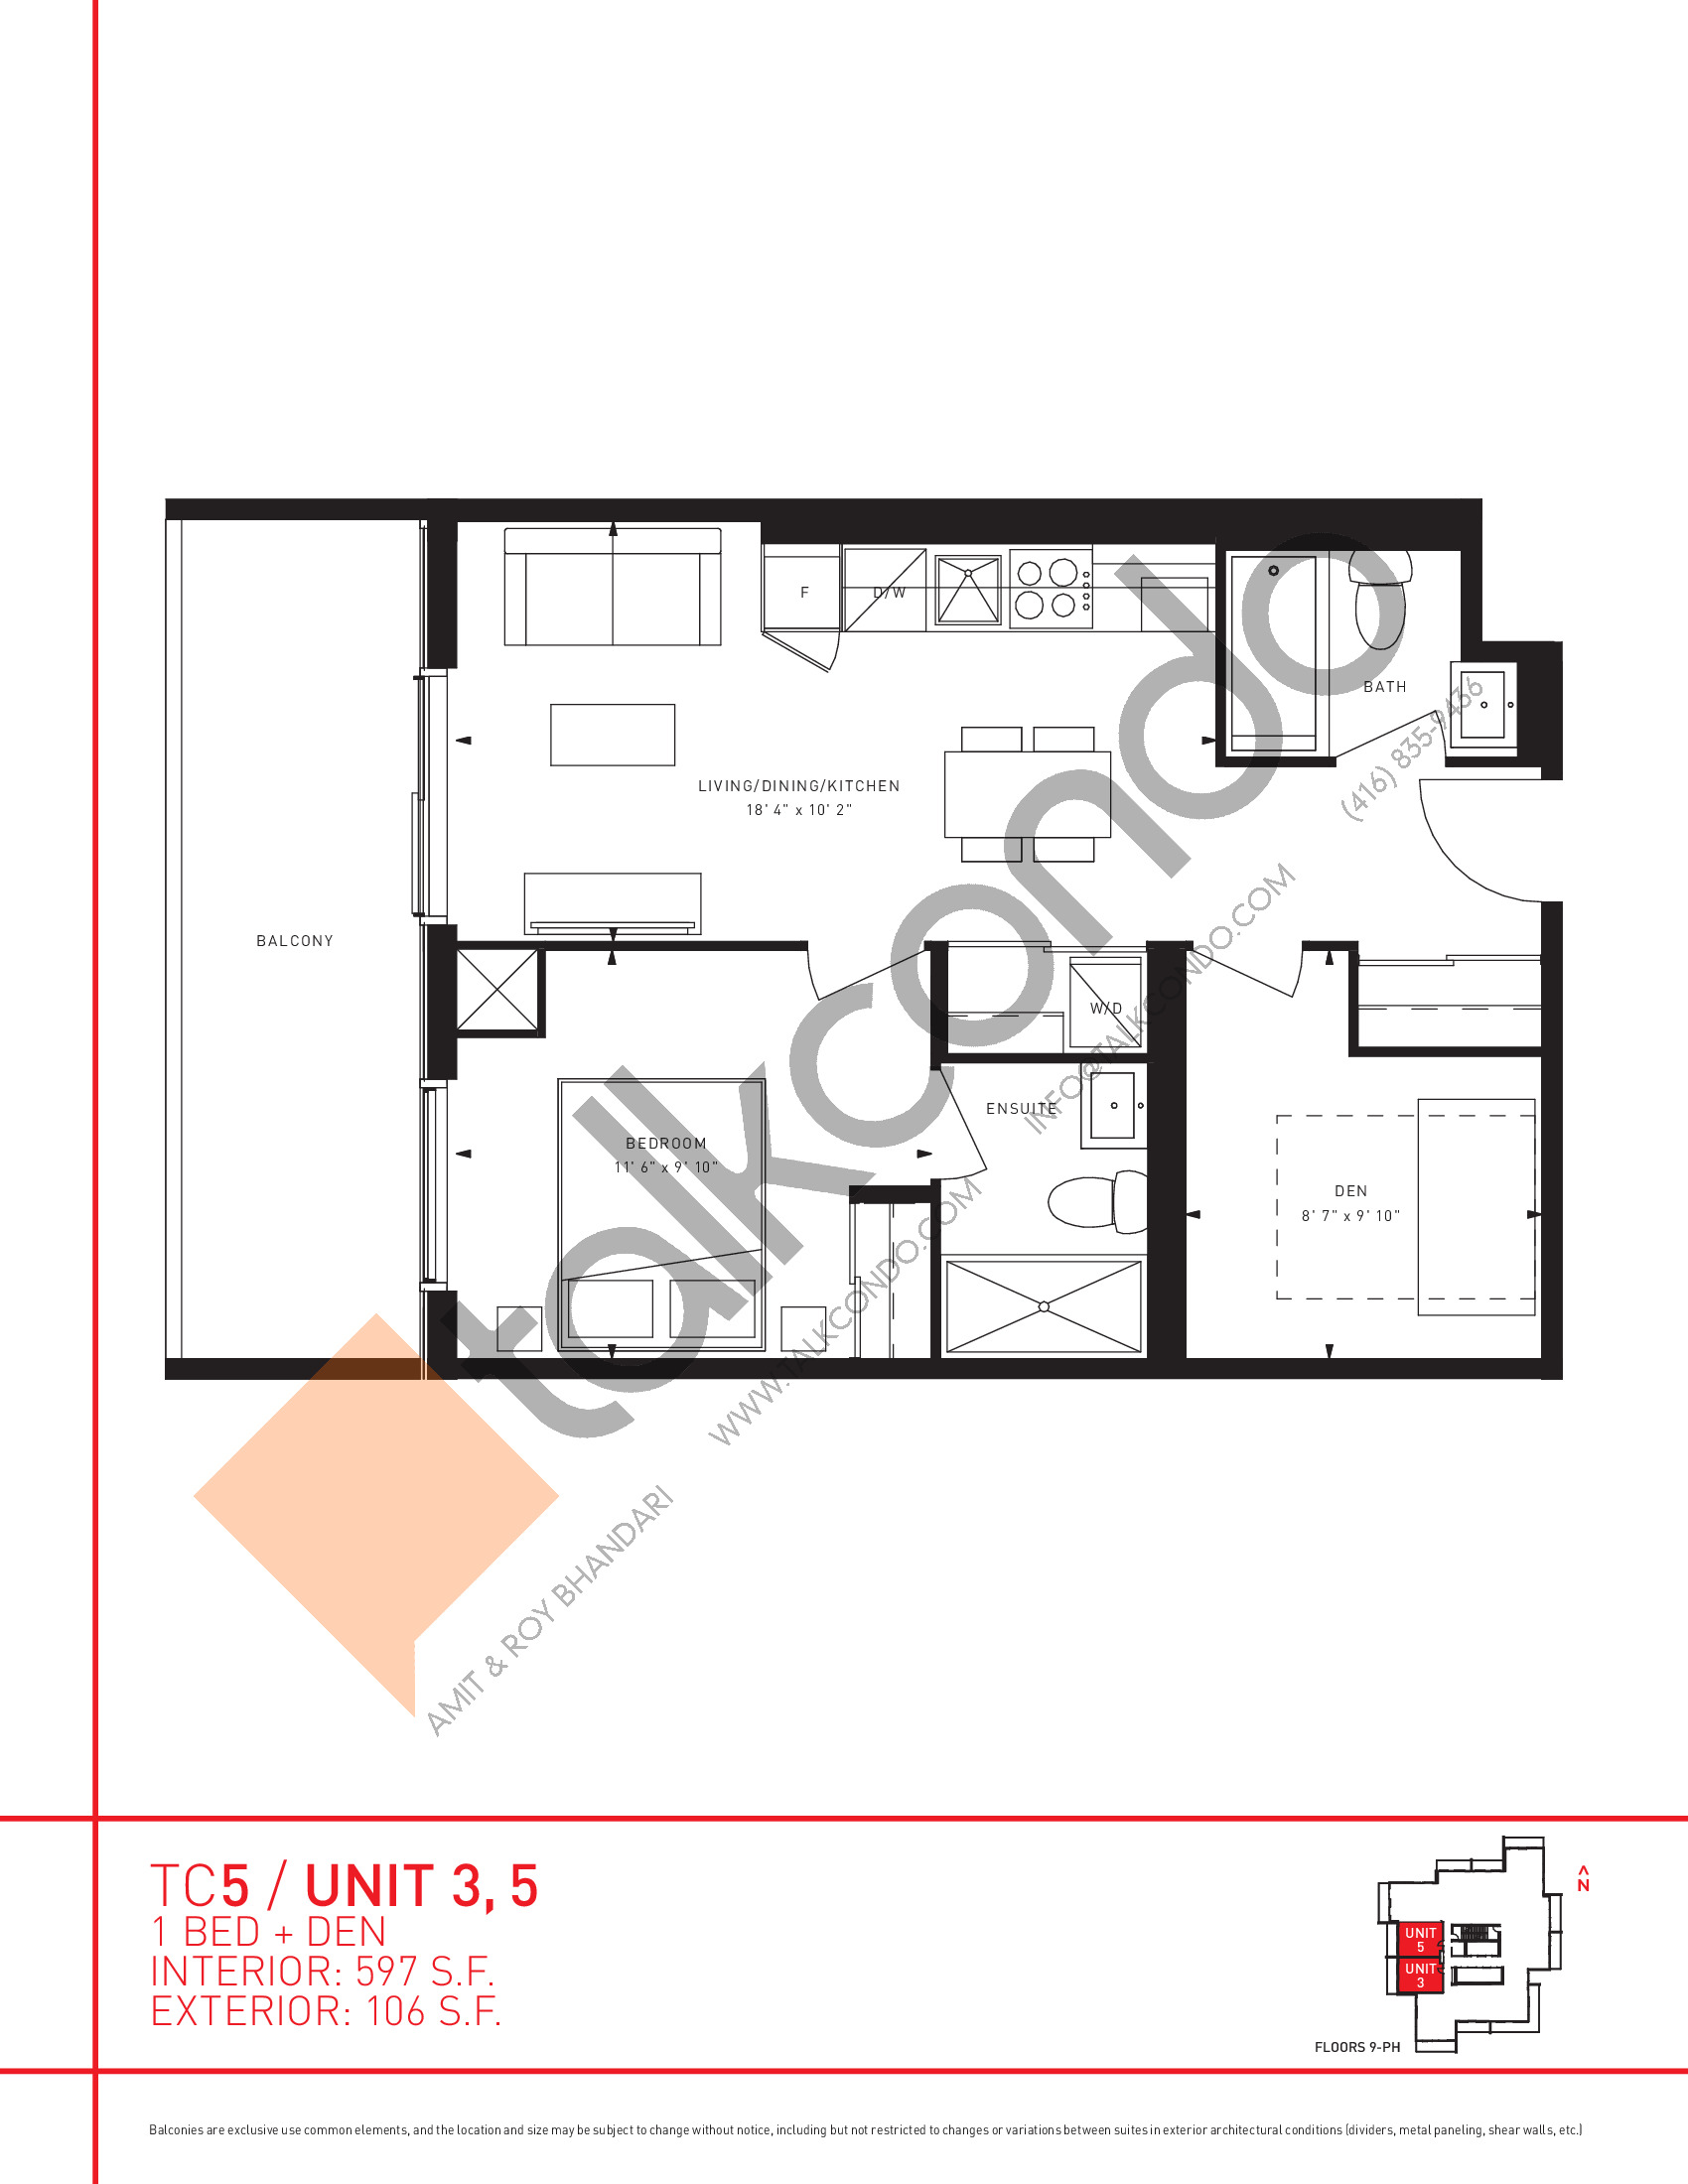 Unit 3, 5 Floor Plan at Transit City 5 (TC5) Condos - 597 sq.ft